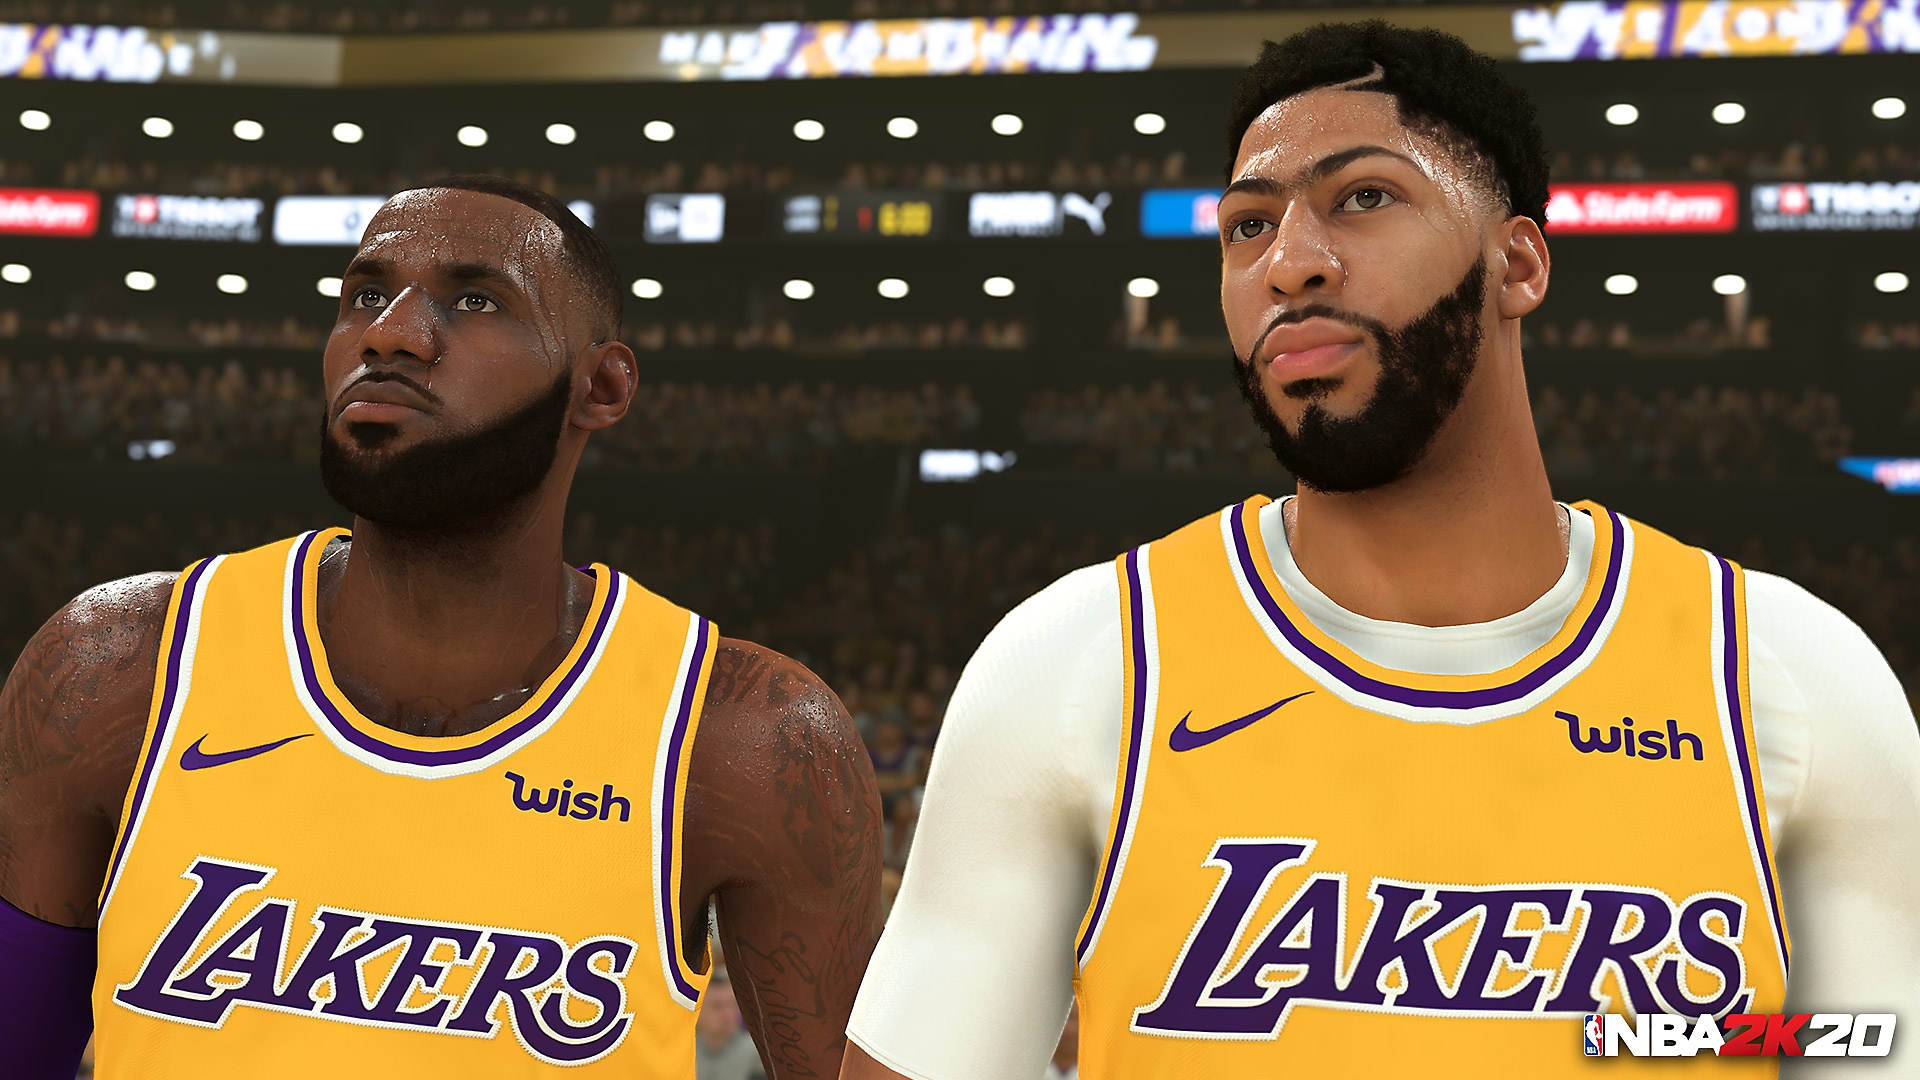 NBA 2K20 - Gallery Screengrab 1